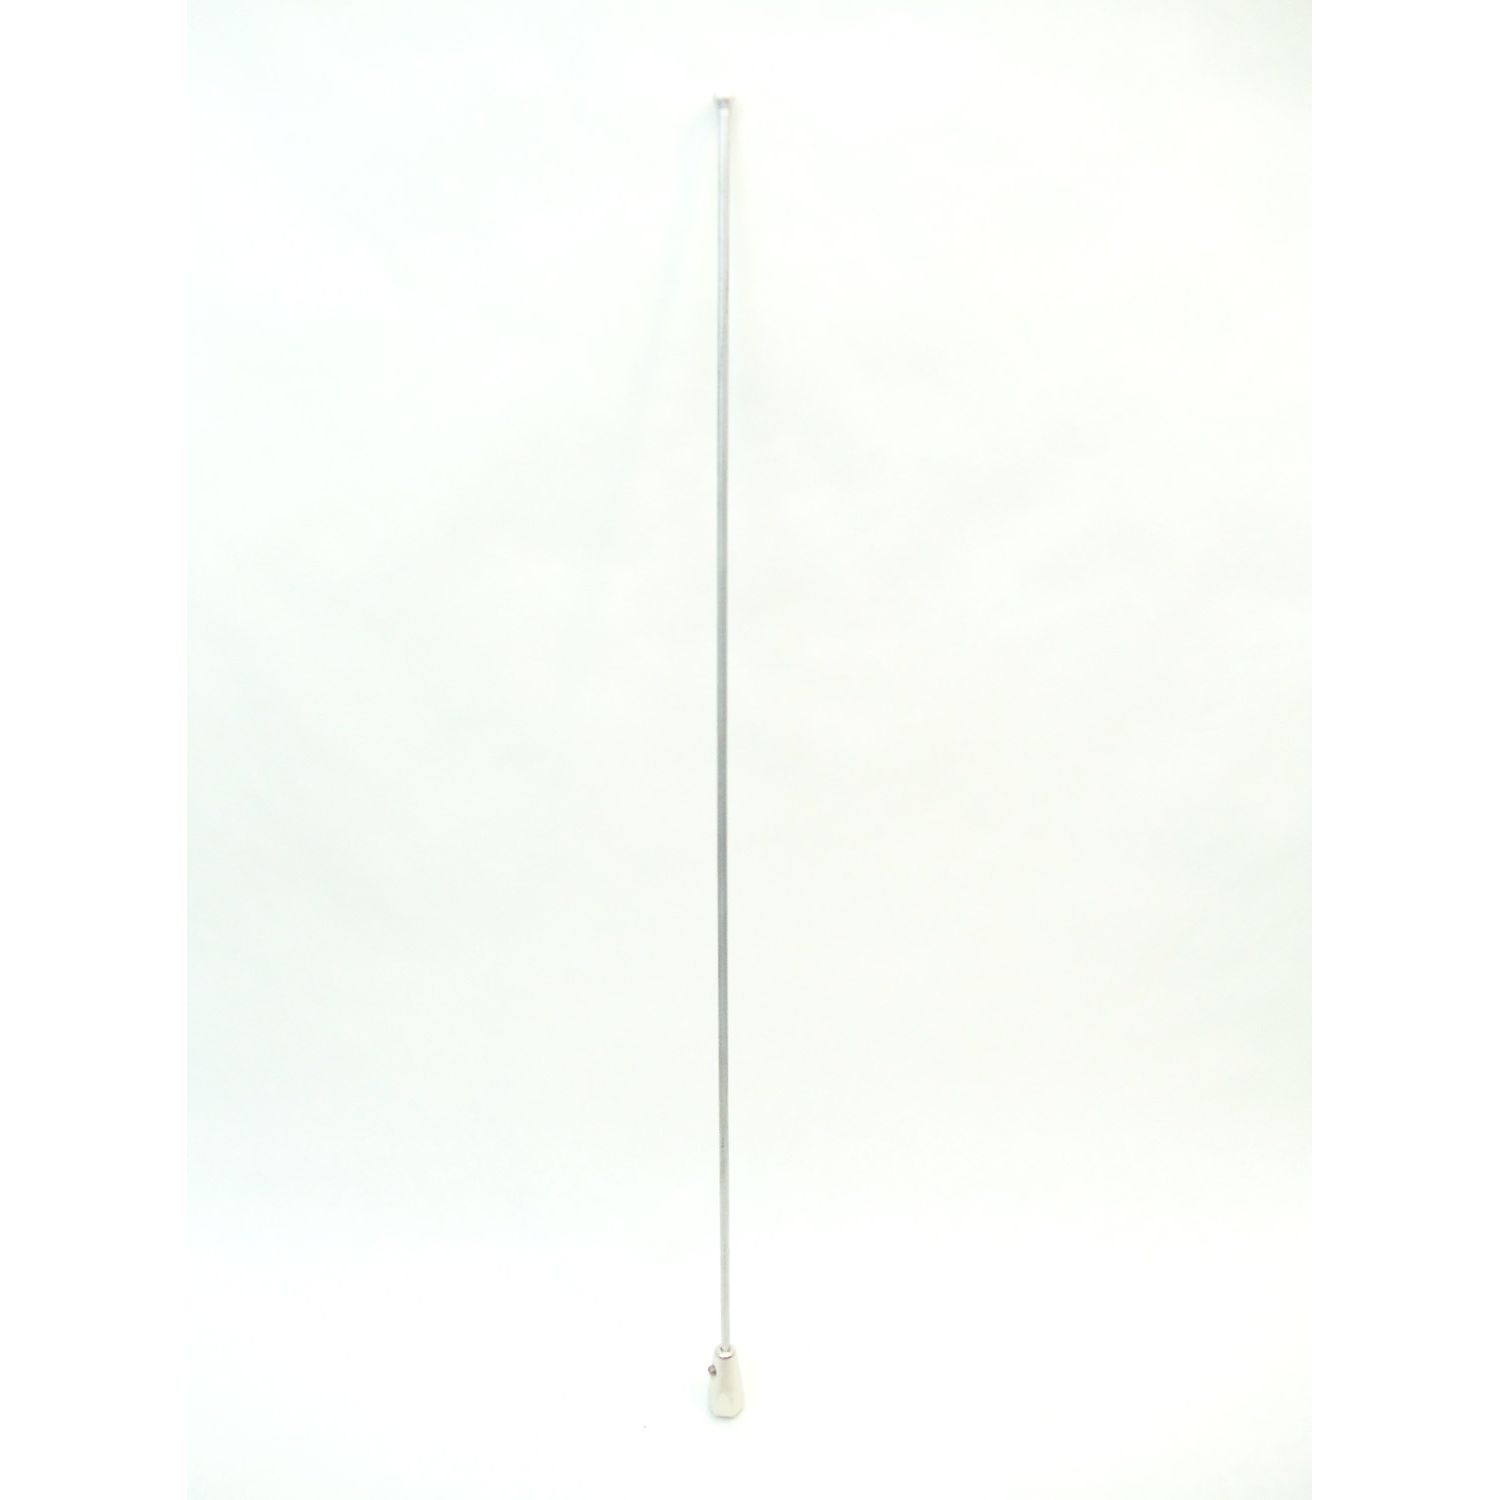 WNMOWBQ - LARSEN REPLACEMENT UNITY STAINLESS STEEL TIP FOR NMO-WBQ 150-170MHZ